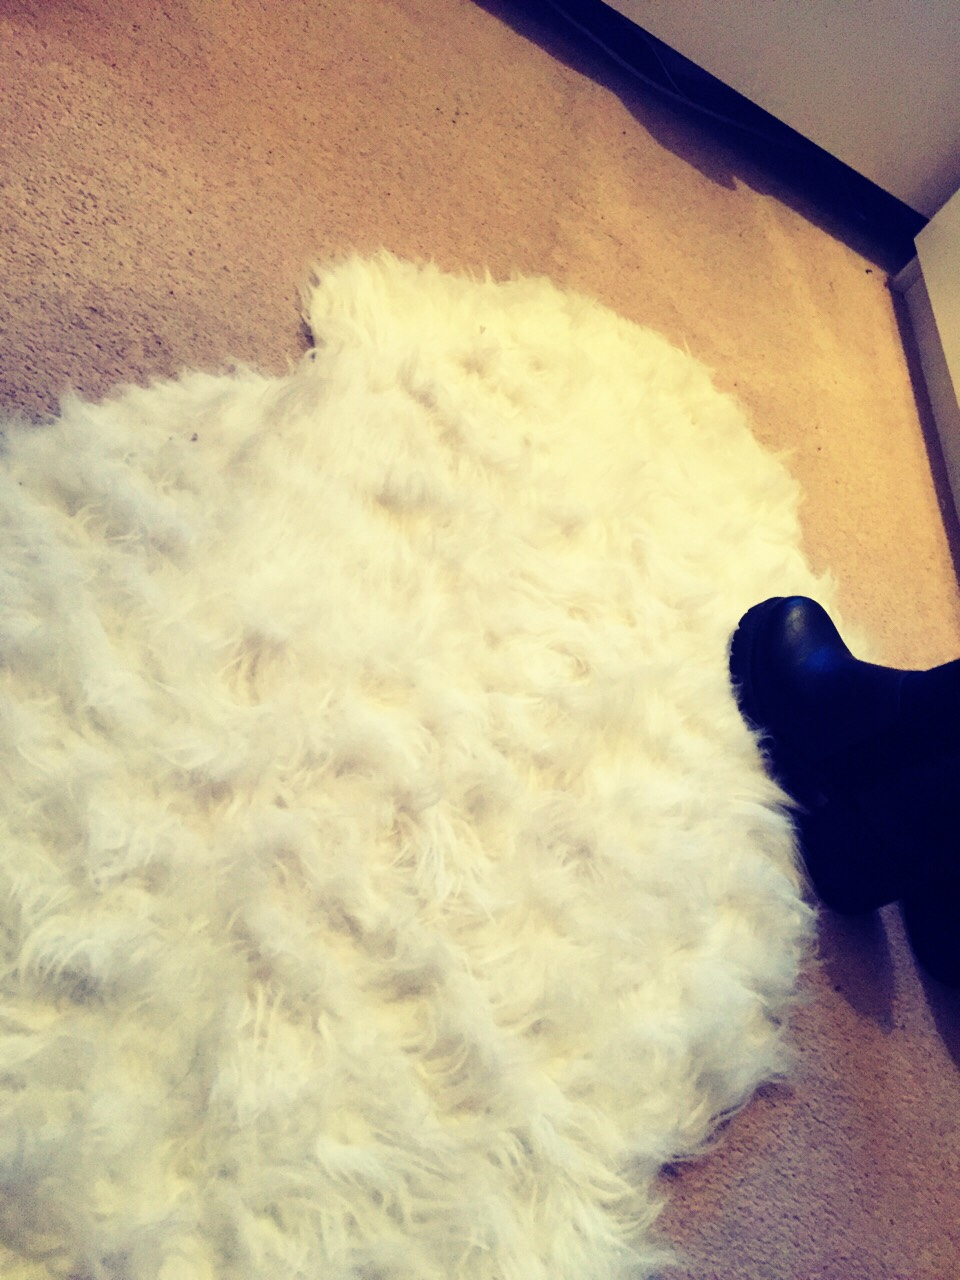 Sheep skin rug Real or not a rug or carpet will completely Chang the look of your room to create a stylish and warm feeling throughout your space, can be caught cheap or not so much but will always improve that room🐑